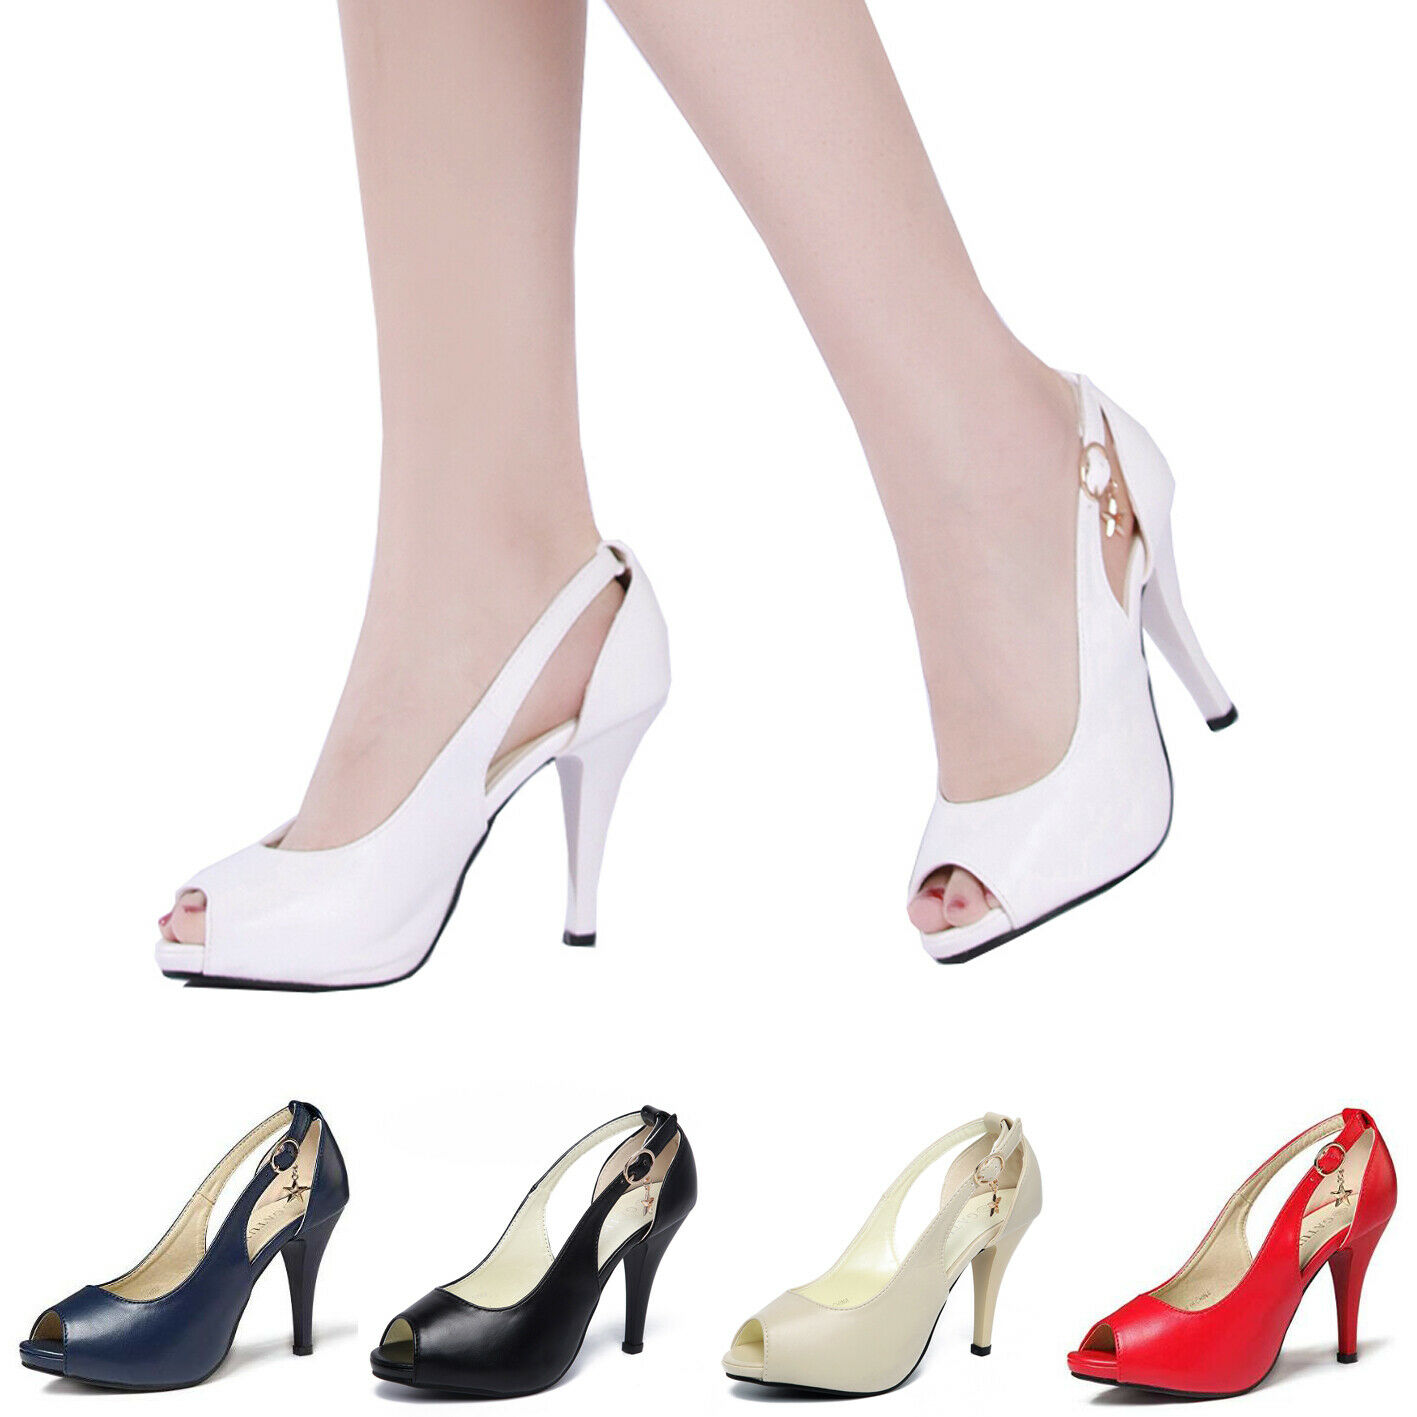 633507eac7b Sexy Women s Peep Toe Strap High Heels Party Prom Pumps Shoes Sandals  Stilettos